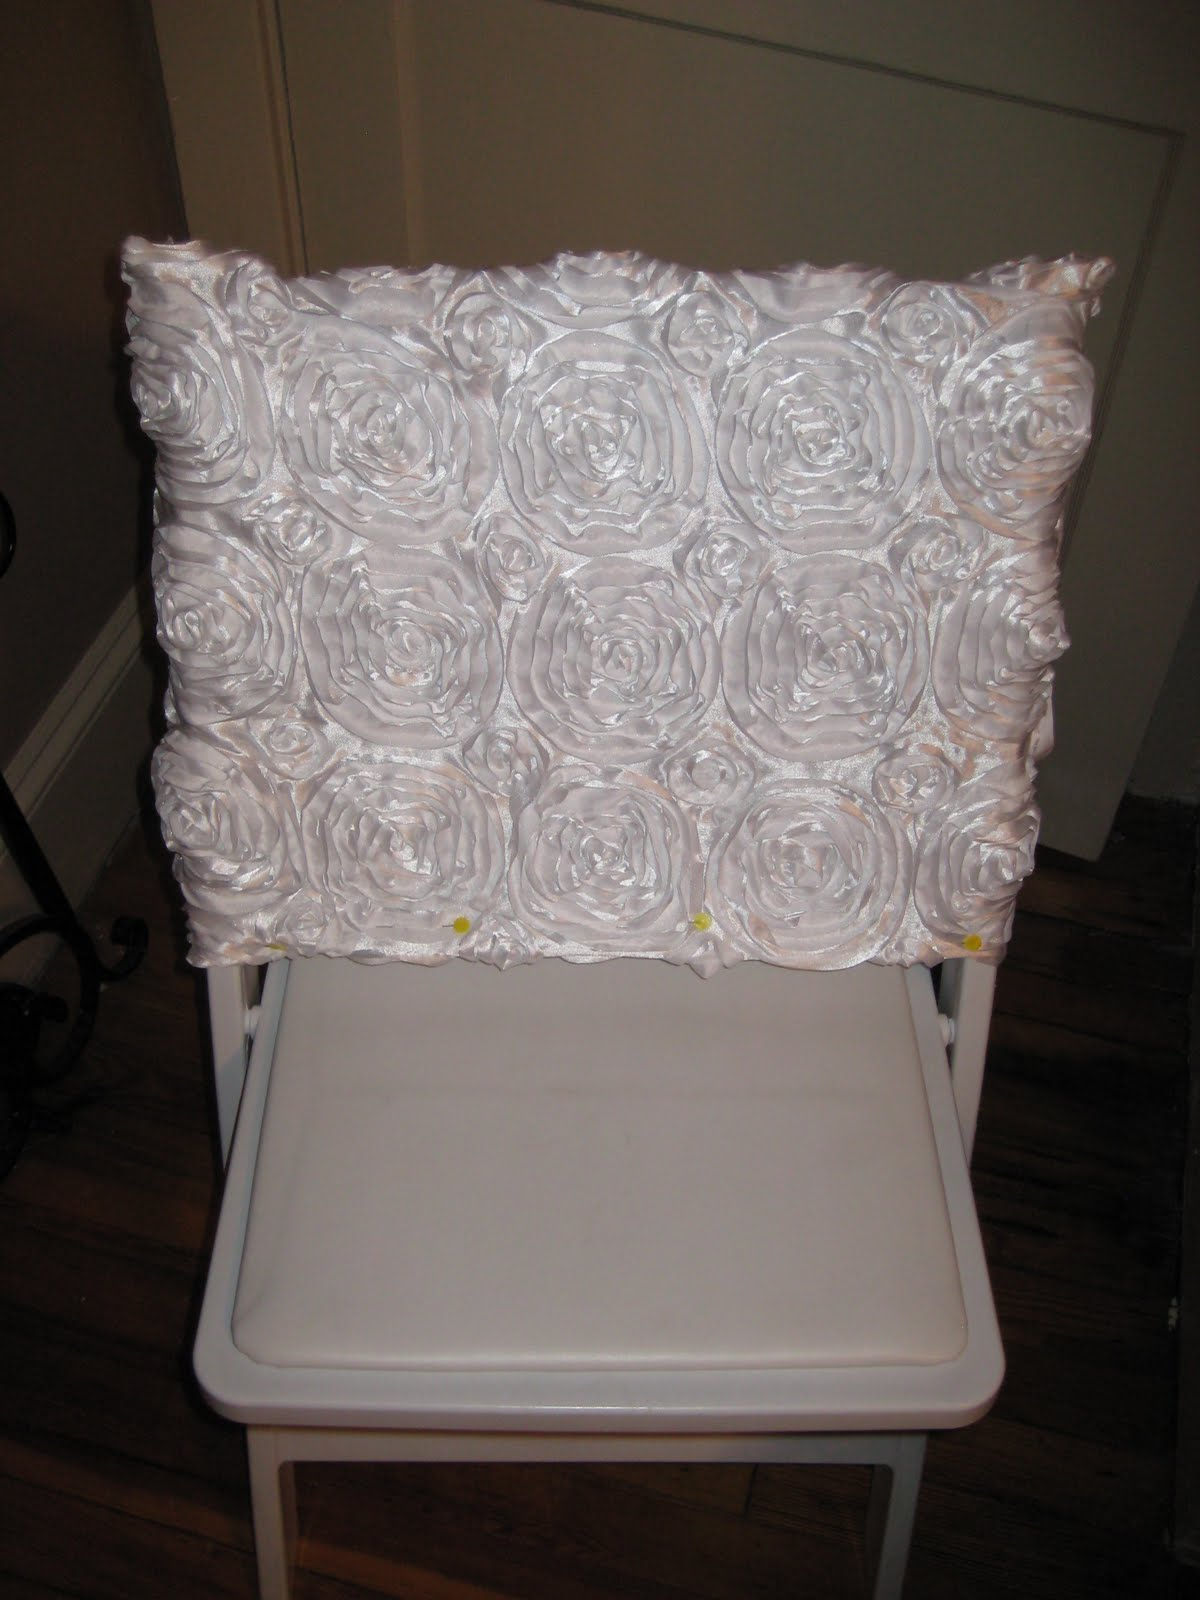 for all things creative!: Bridal Shower Chair for Bride-to-Be